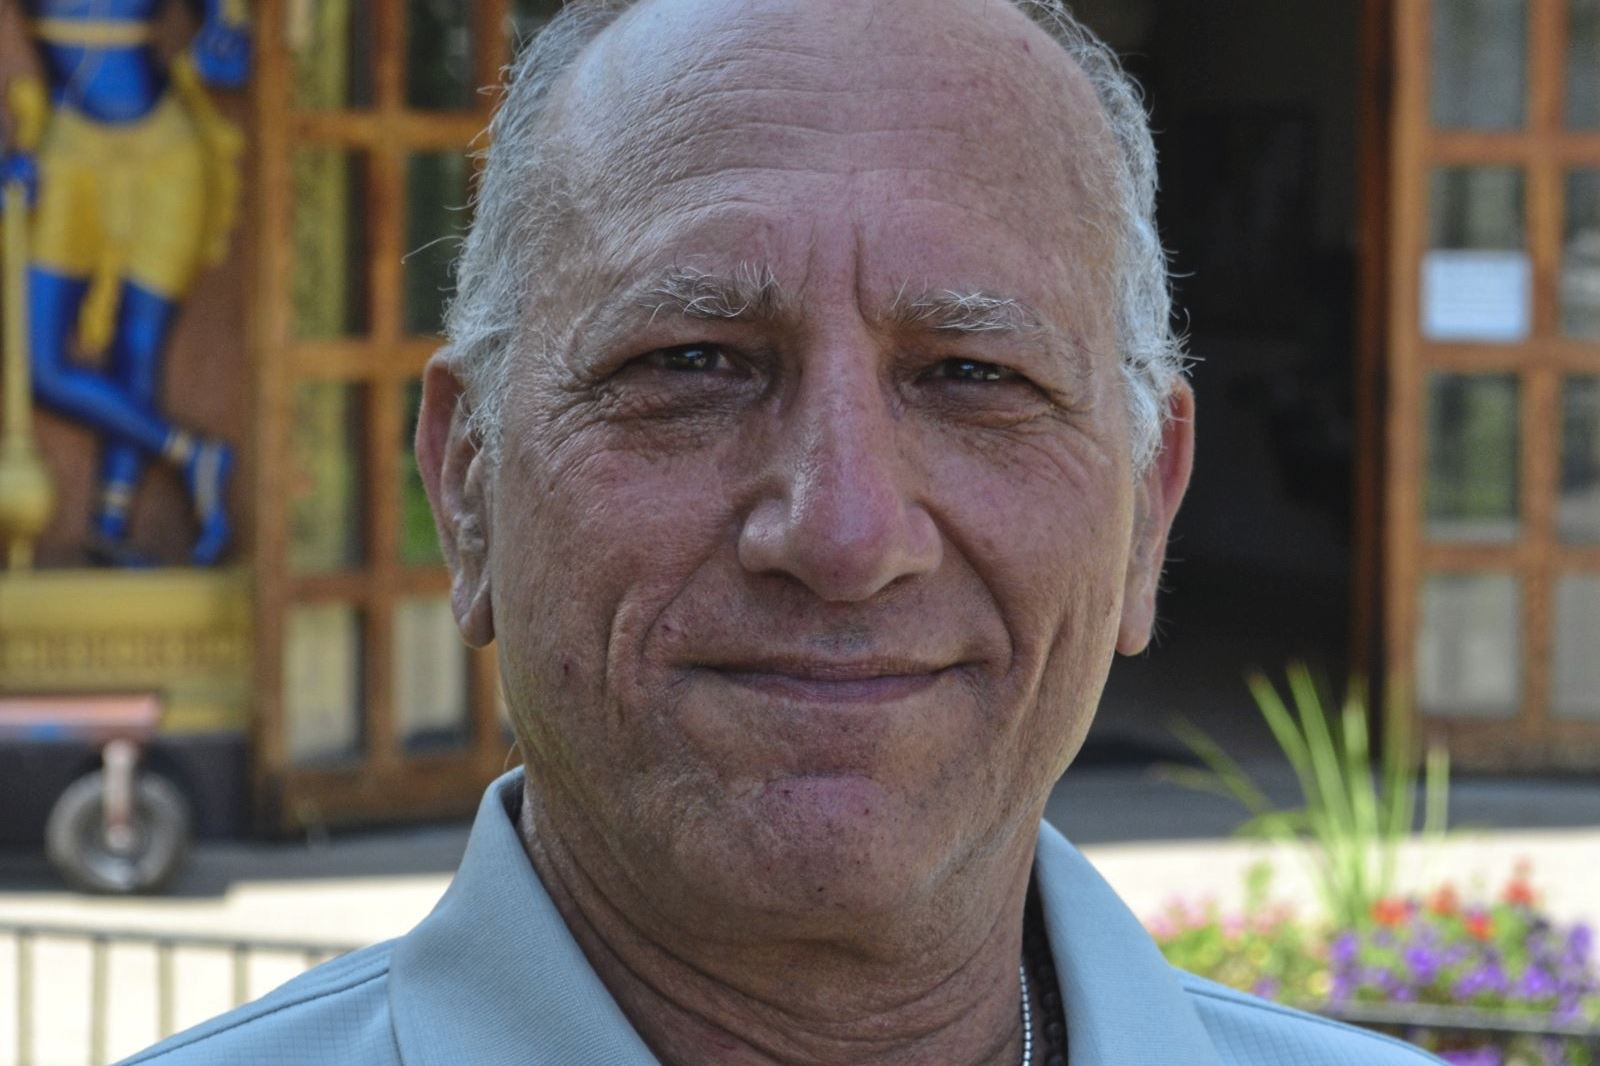 new vrindaban 1 New Vrindaban board member Gabriel Fried.New Vrindaban in West Virginia is now allowing the exploitation of the underground mineral resources.